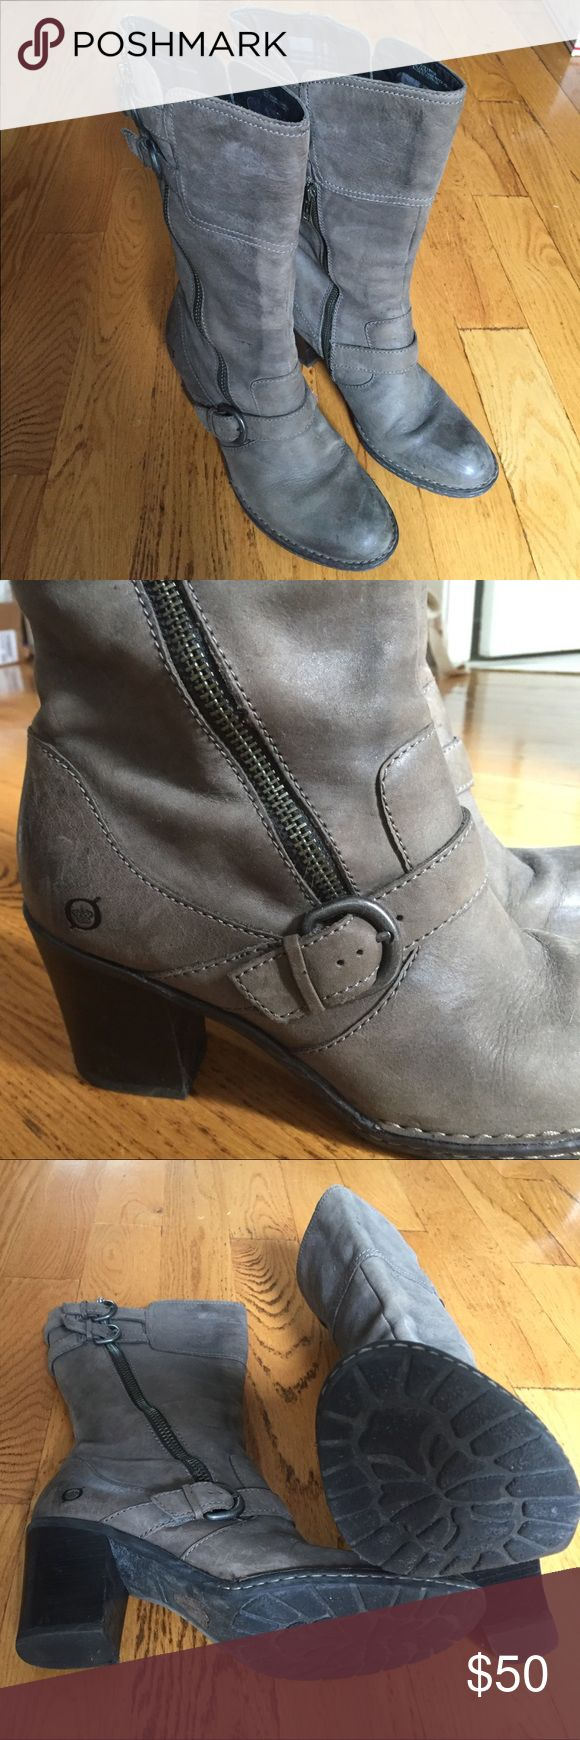 Born boots Grey size 10 Born boots. lightly used, still in very good condition. I loved these boots but since pregnancy my foot is too big for them. Born Shoes Heeled Boots